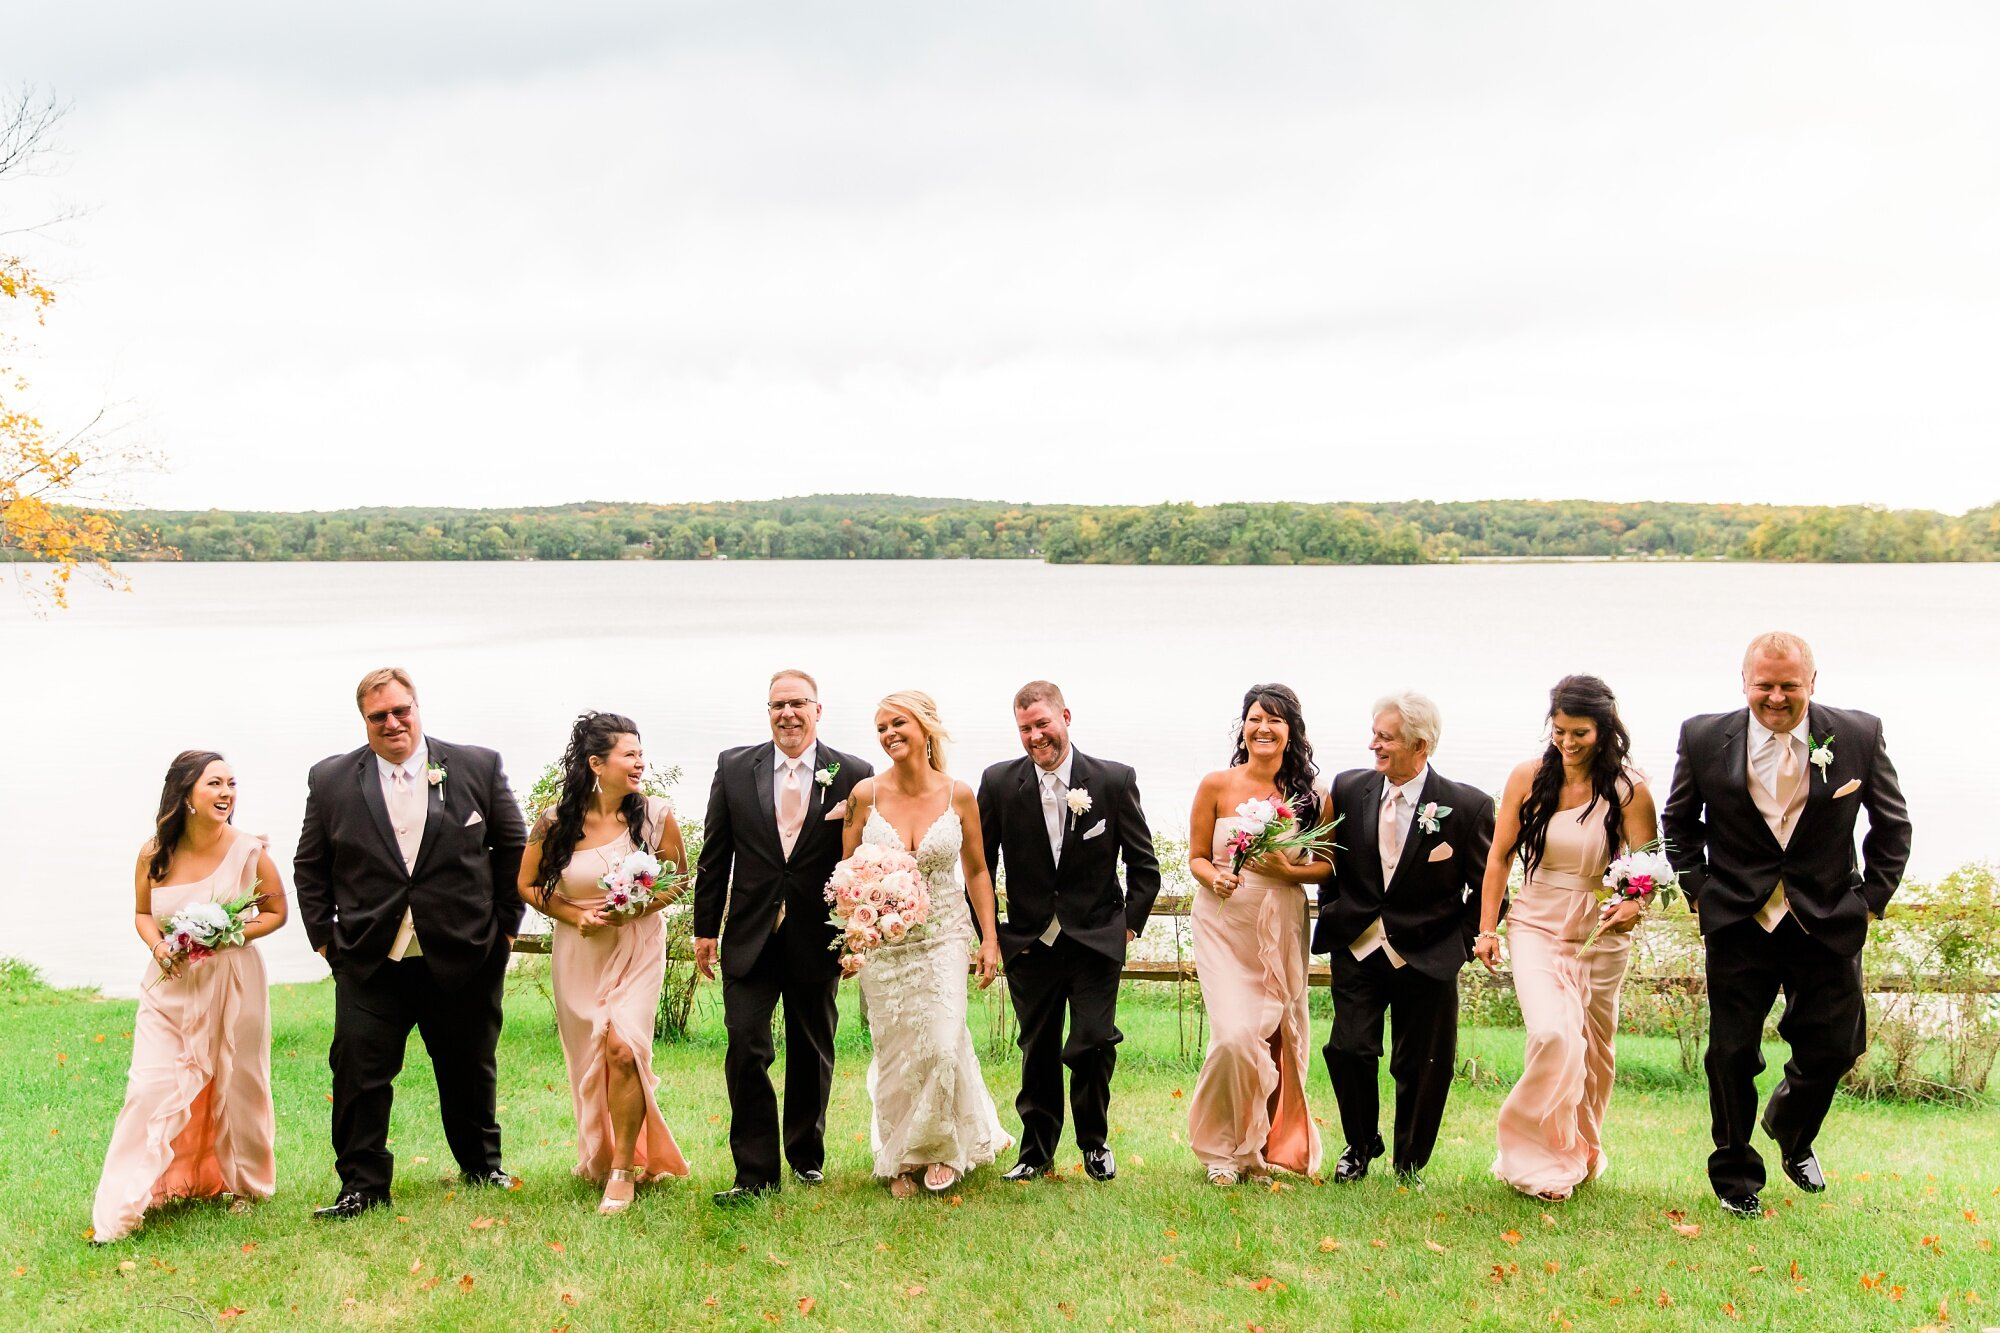 Amber Langerud Photography_Eagle Lake Rustic Styled Outdoor Wedding in Minnesota_6853.jpg